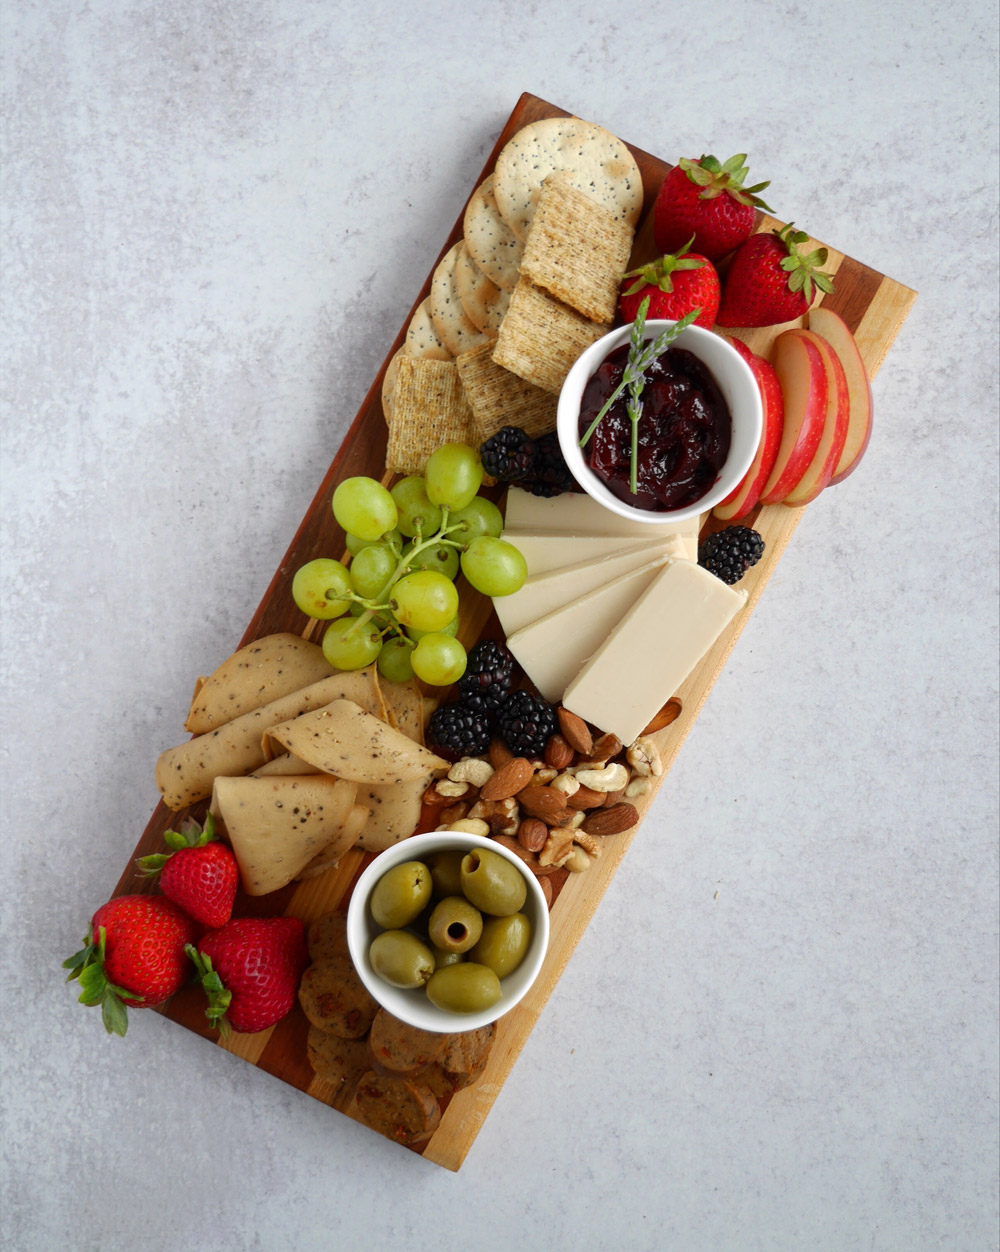 How To Make A Vegan Charcuterie Board, Medium Board